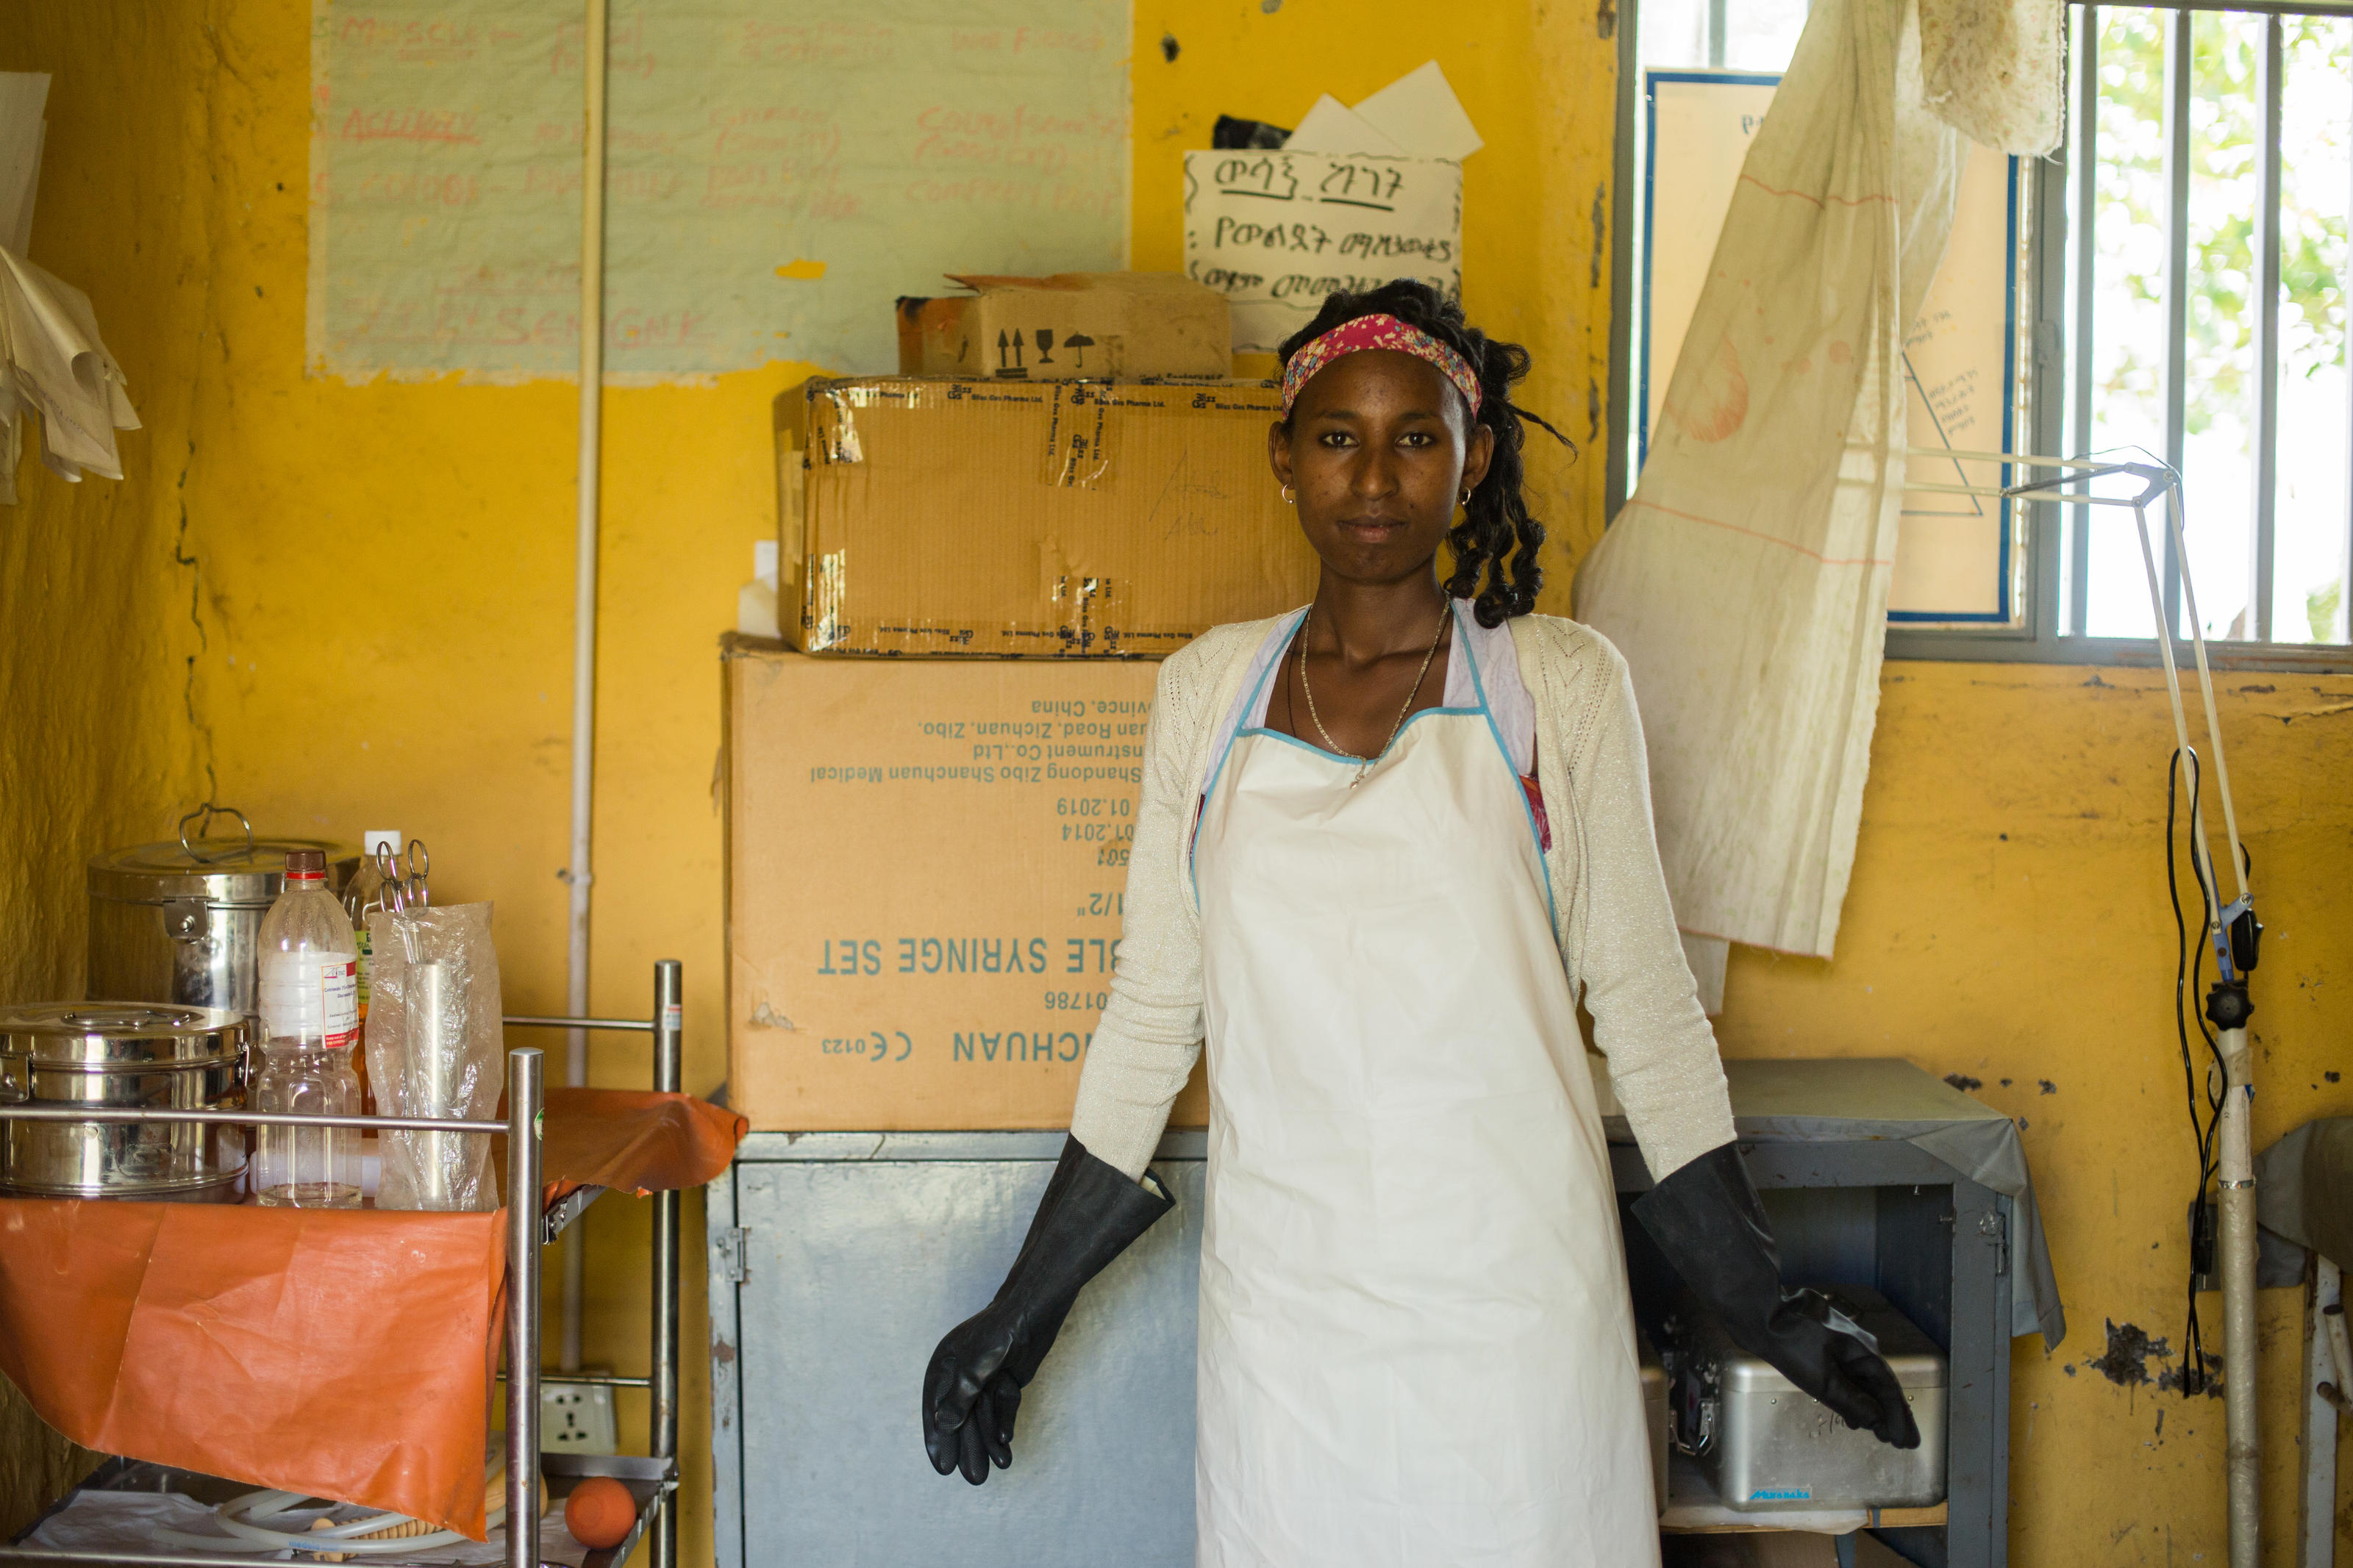 Yehasab Ayenew, 24, a cleaner at Yiraber Health Centre, Ethiopia